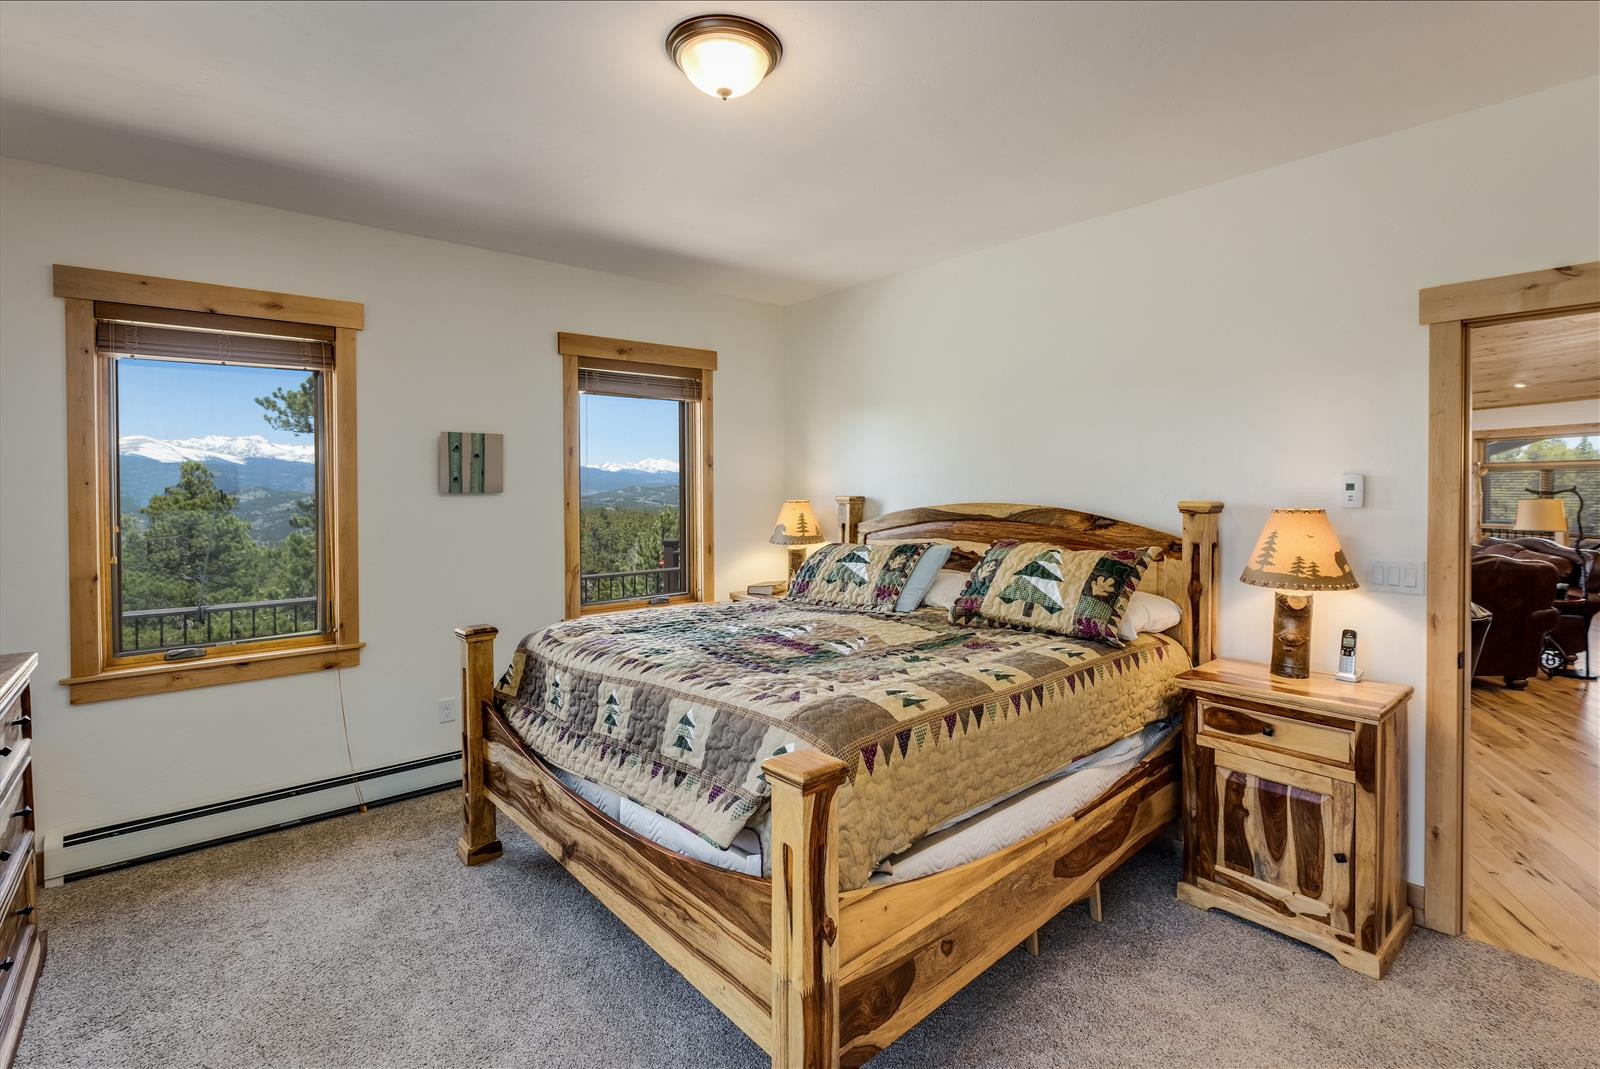 Master Bedroom with access to wrap-around deck